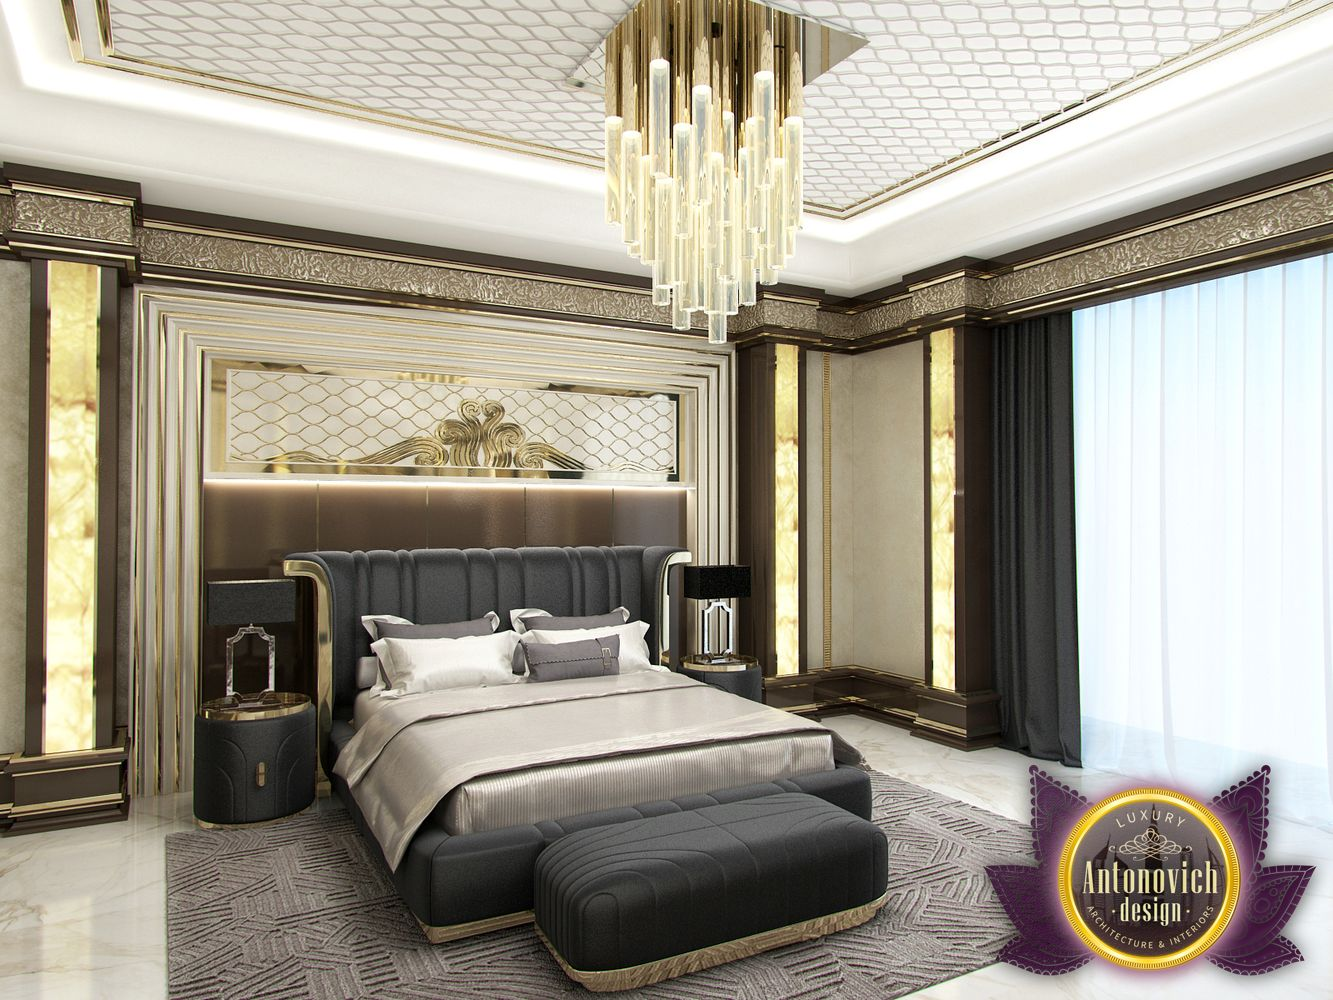 Luxury antonovich design uae master bedroom in modern for Luxury modern bedroom